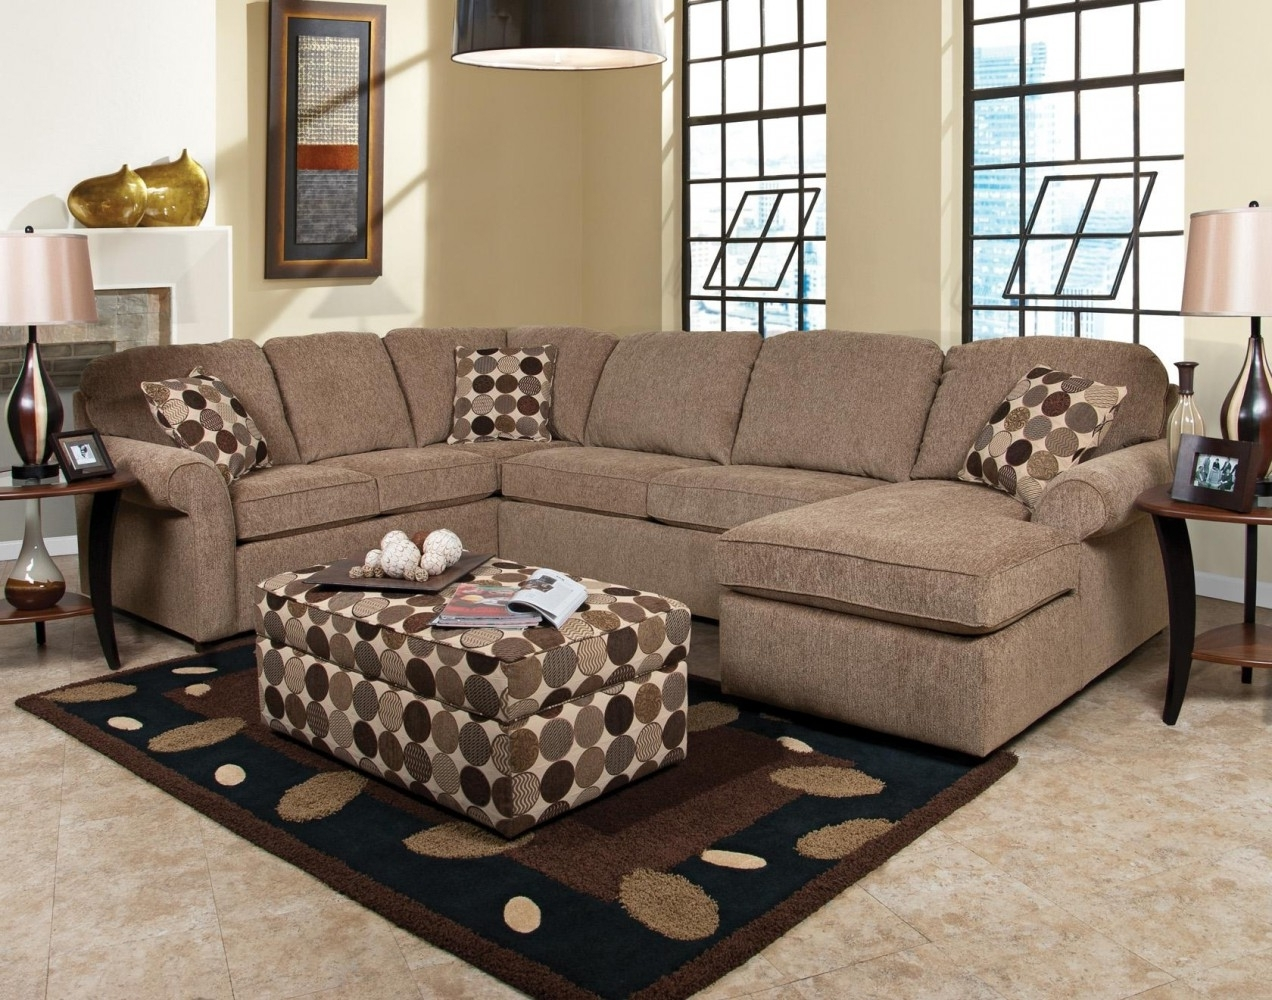 Grande Prairie Ab Sectional Sofas With Regard To Current January 10, 2017 – Sectional Sofas (Gallery 9 of 20)